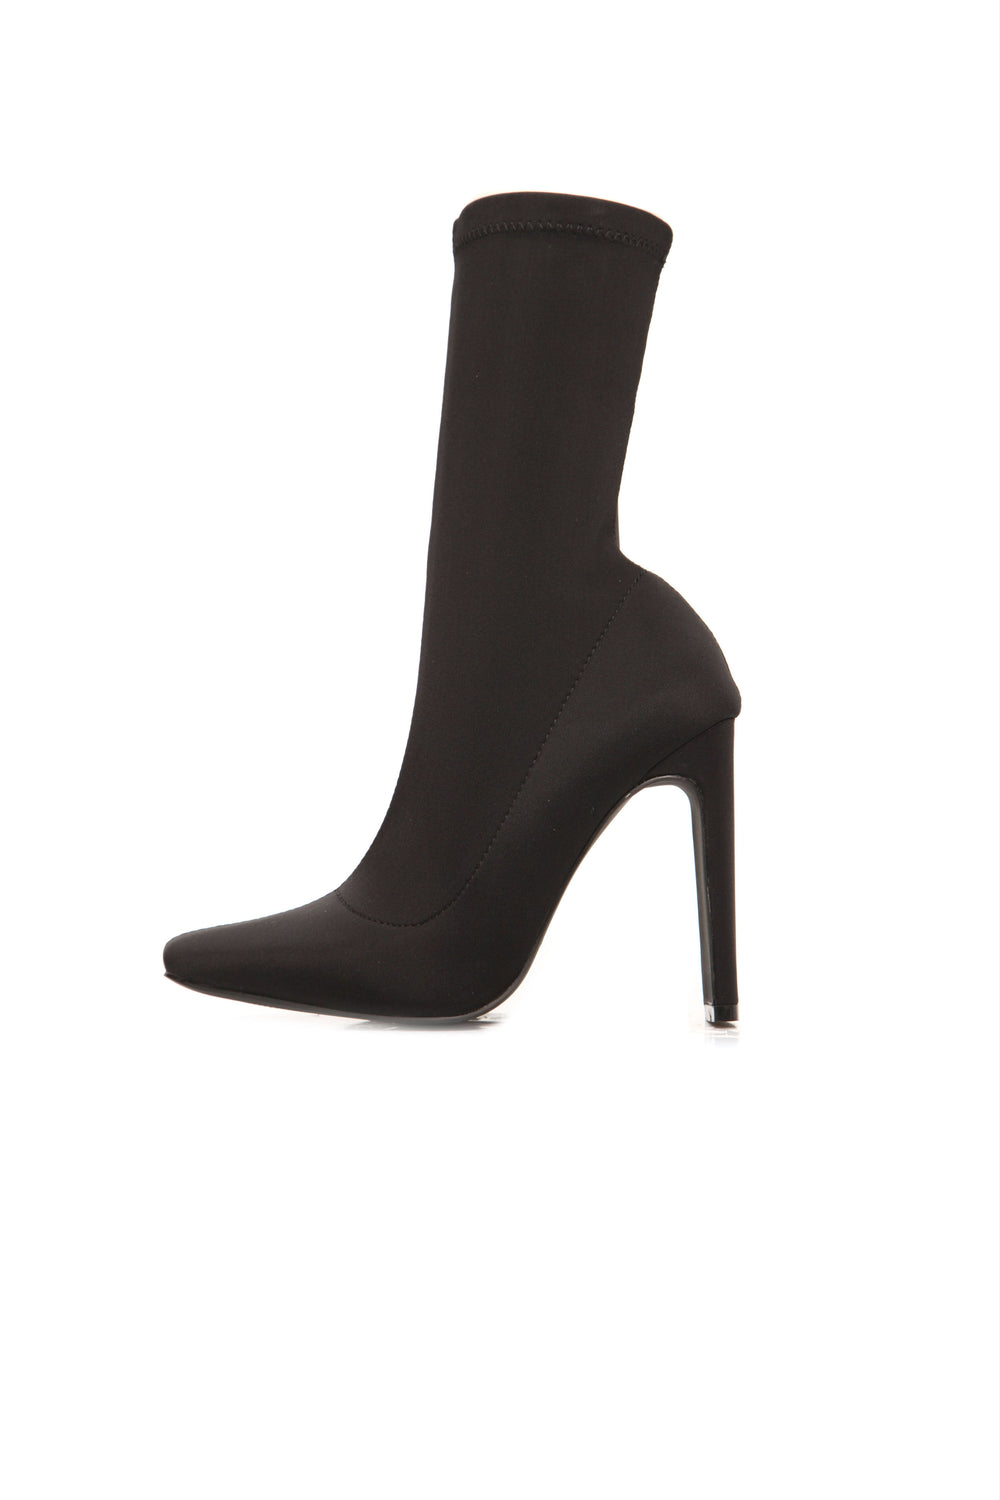 Can You Say Sleek Bootie - Black